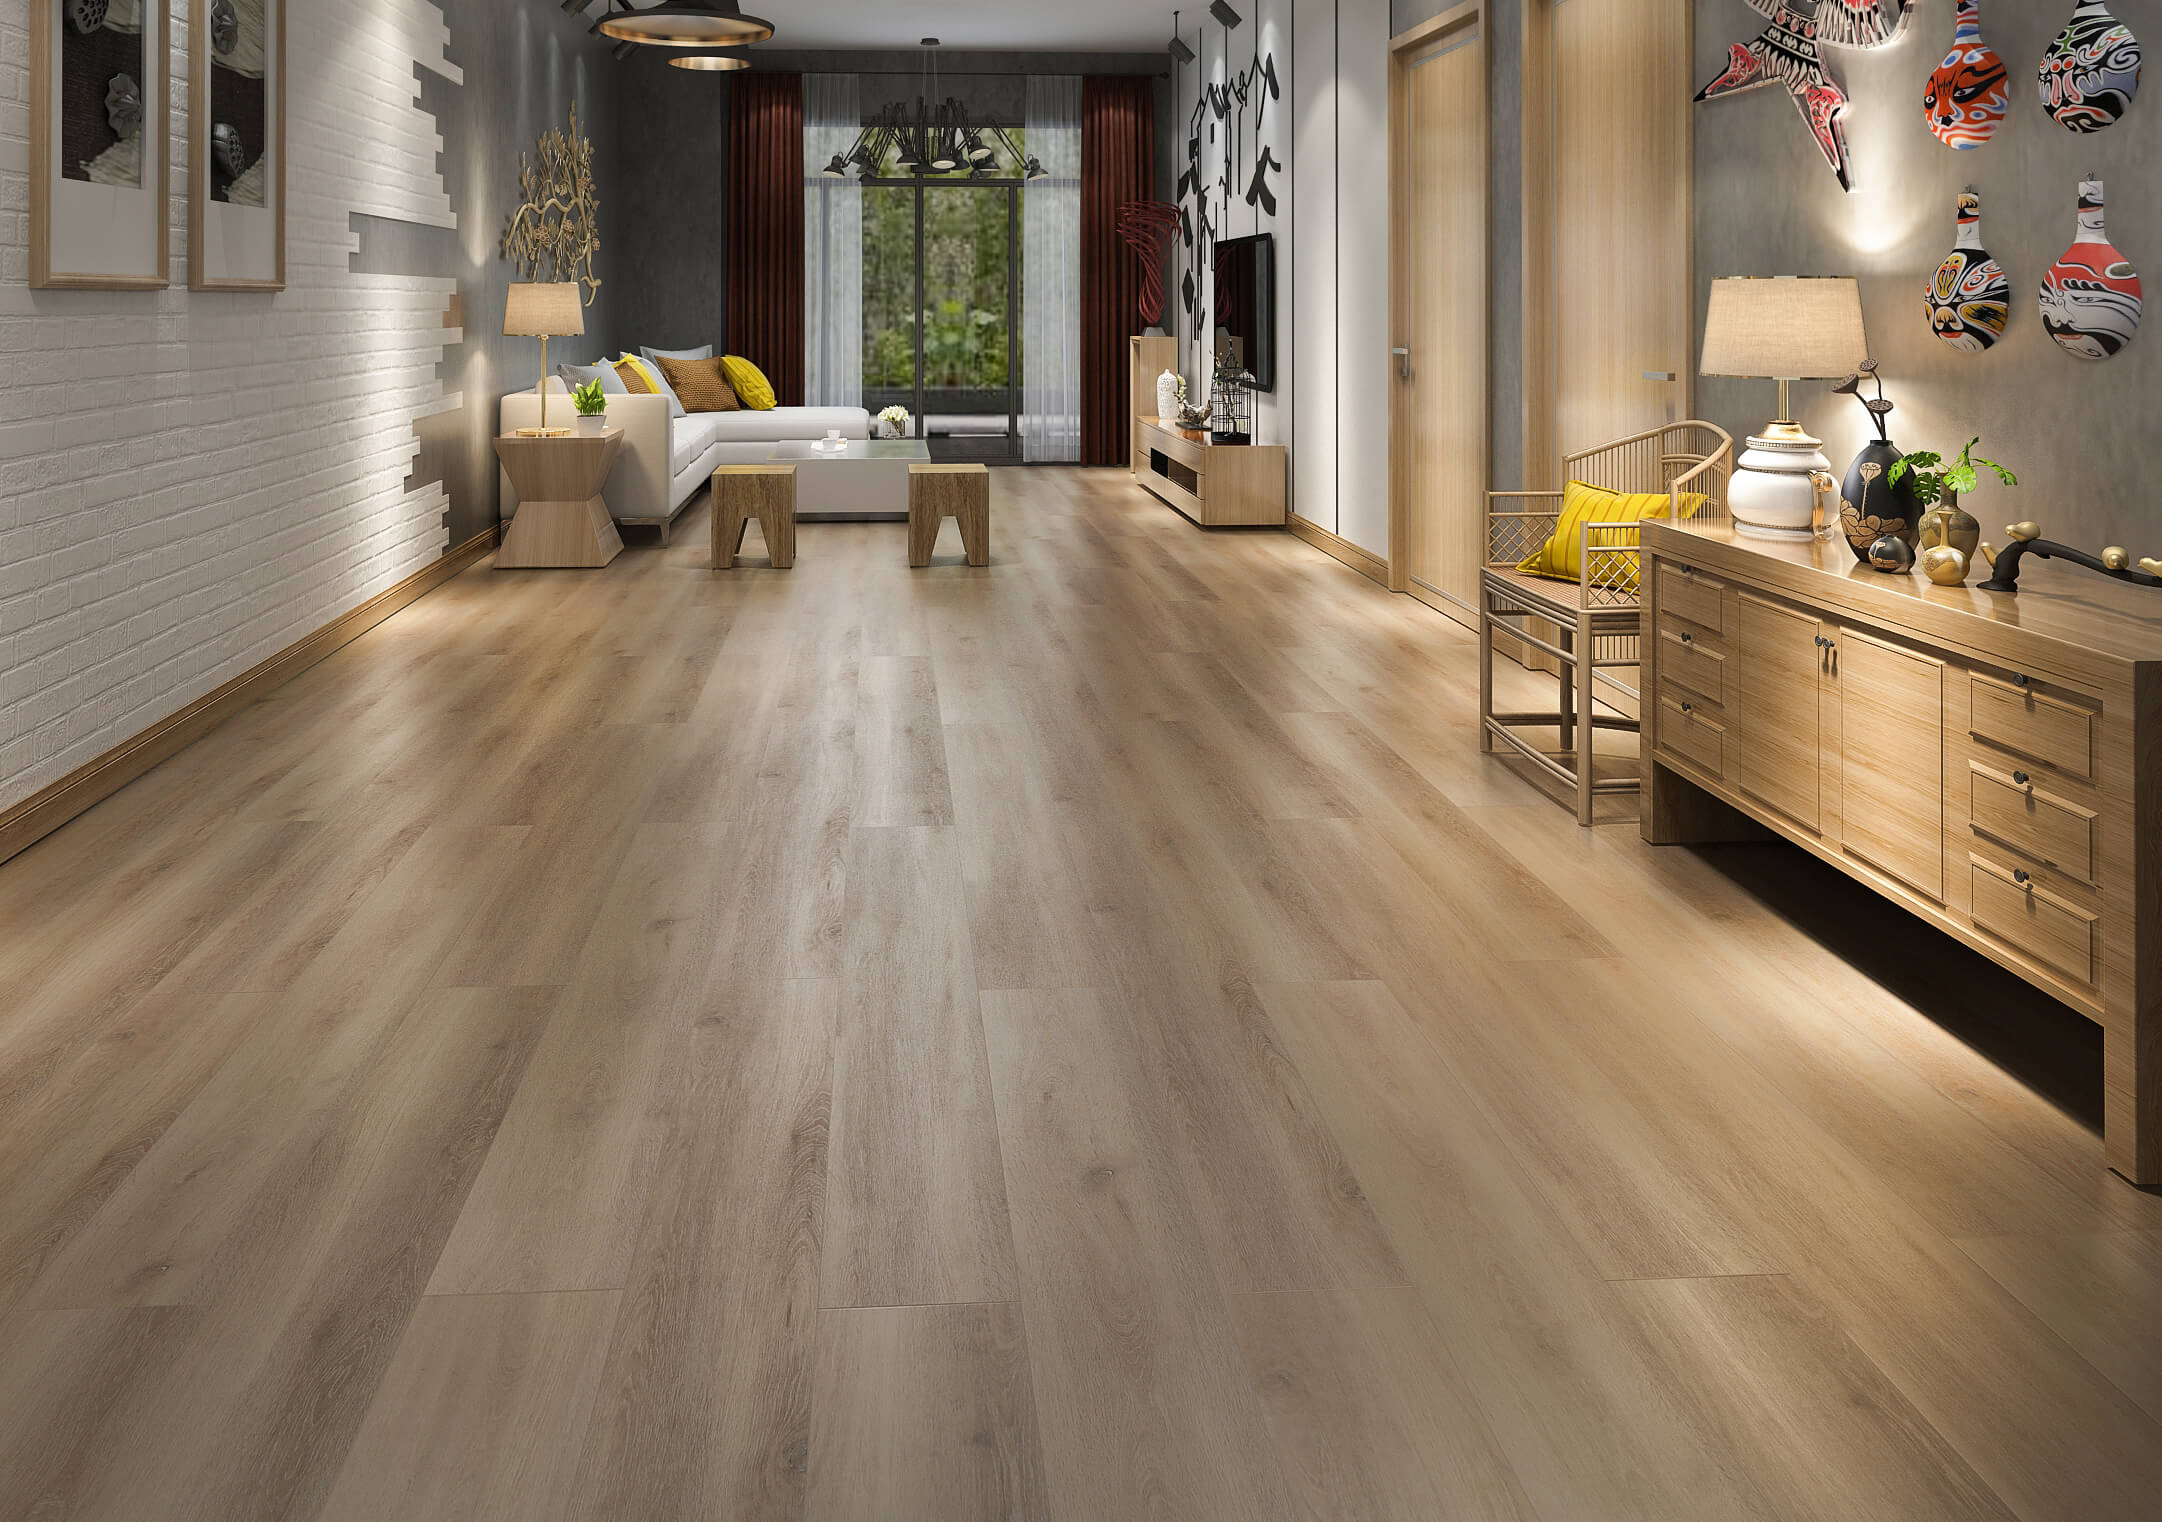 Impervia Commercial European mid Oak Luxury Vinyl Flooring